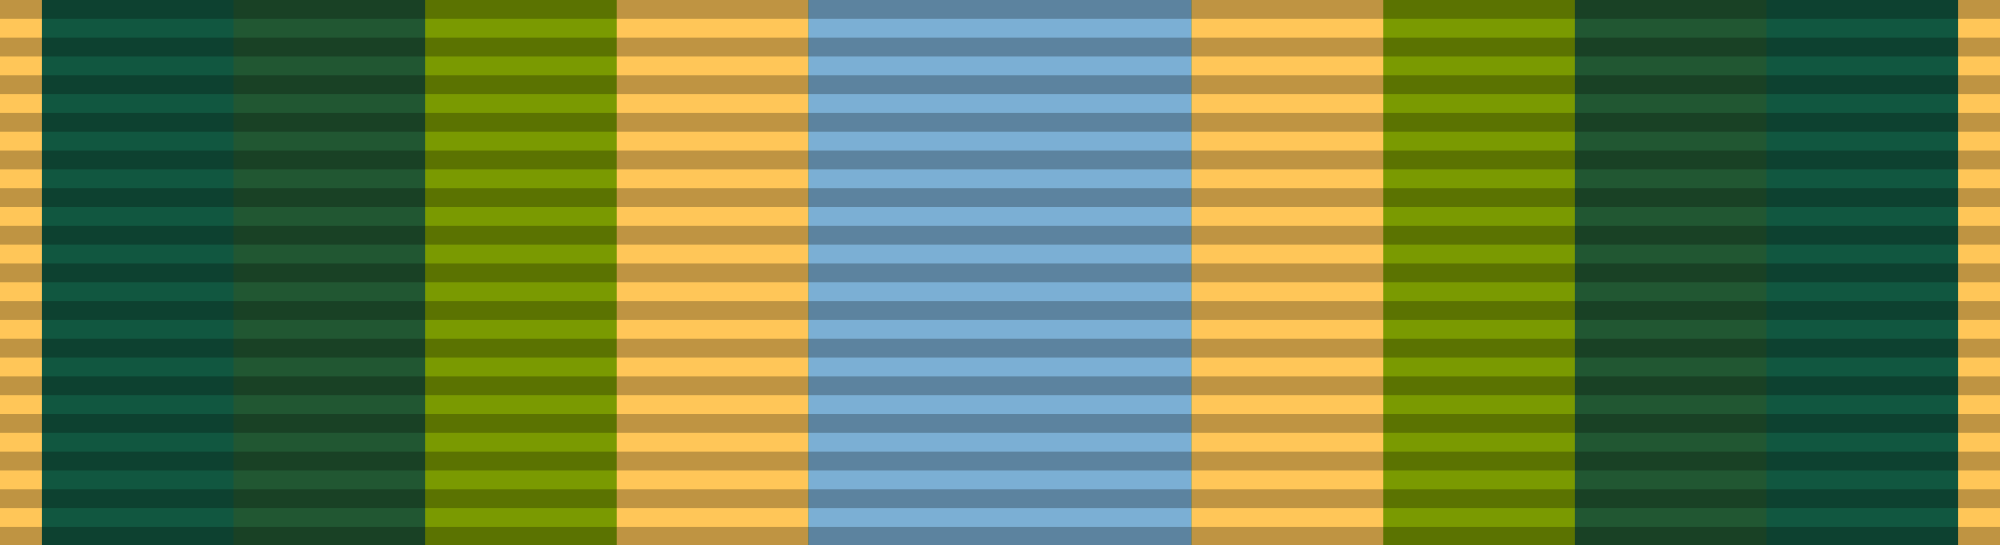 Armed Forces Service Medal ribbon.png